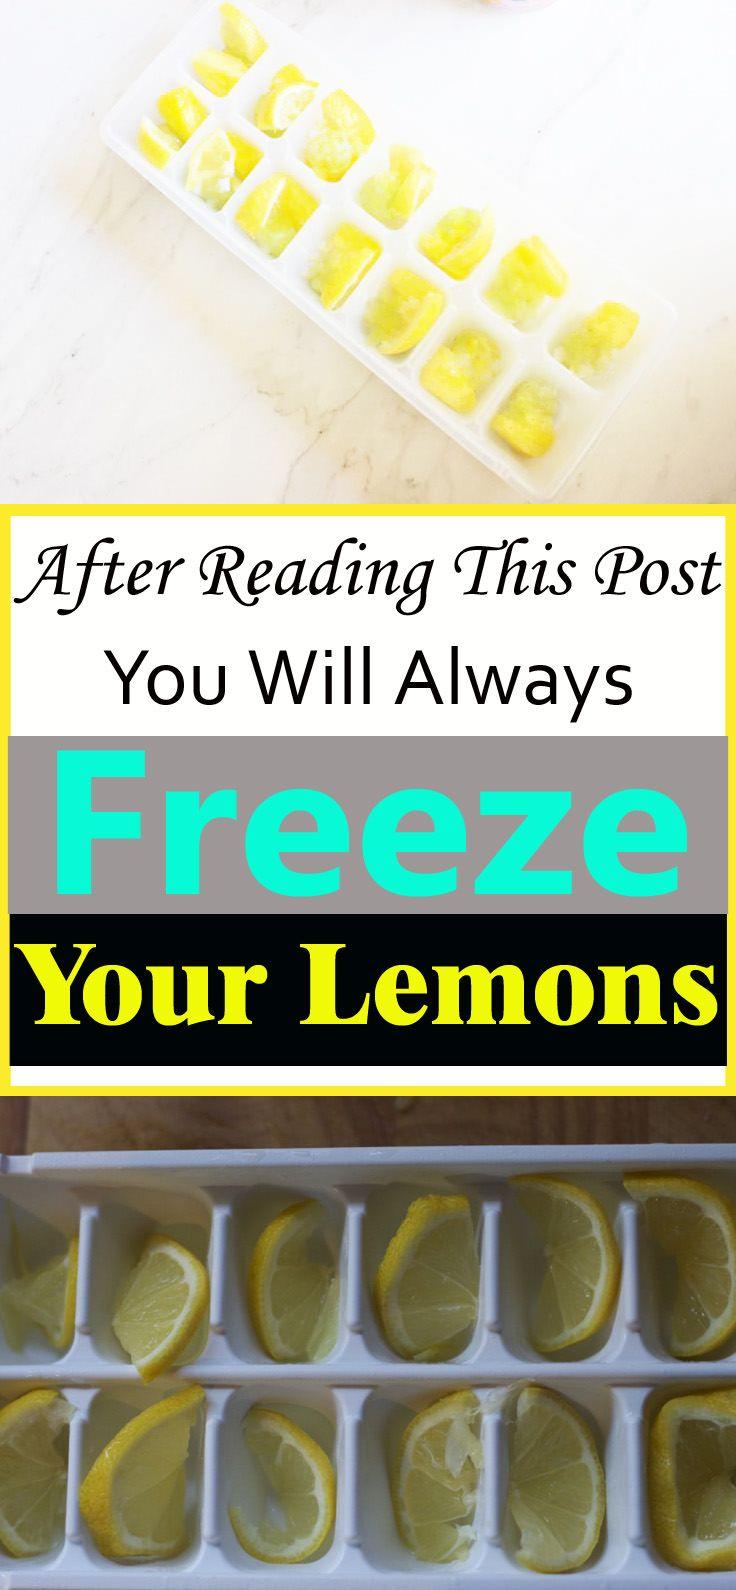 Why should you freeze lemons? Is there anything special about froze lemons? Definitely, find out what!